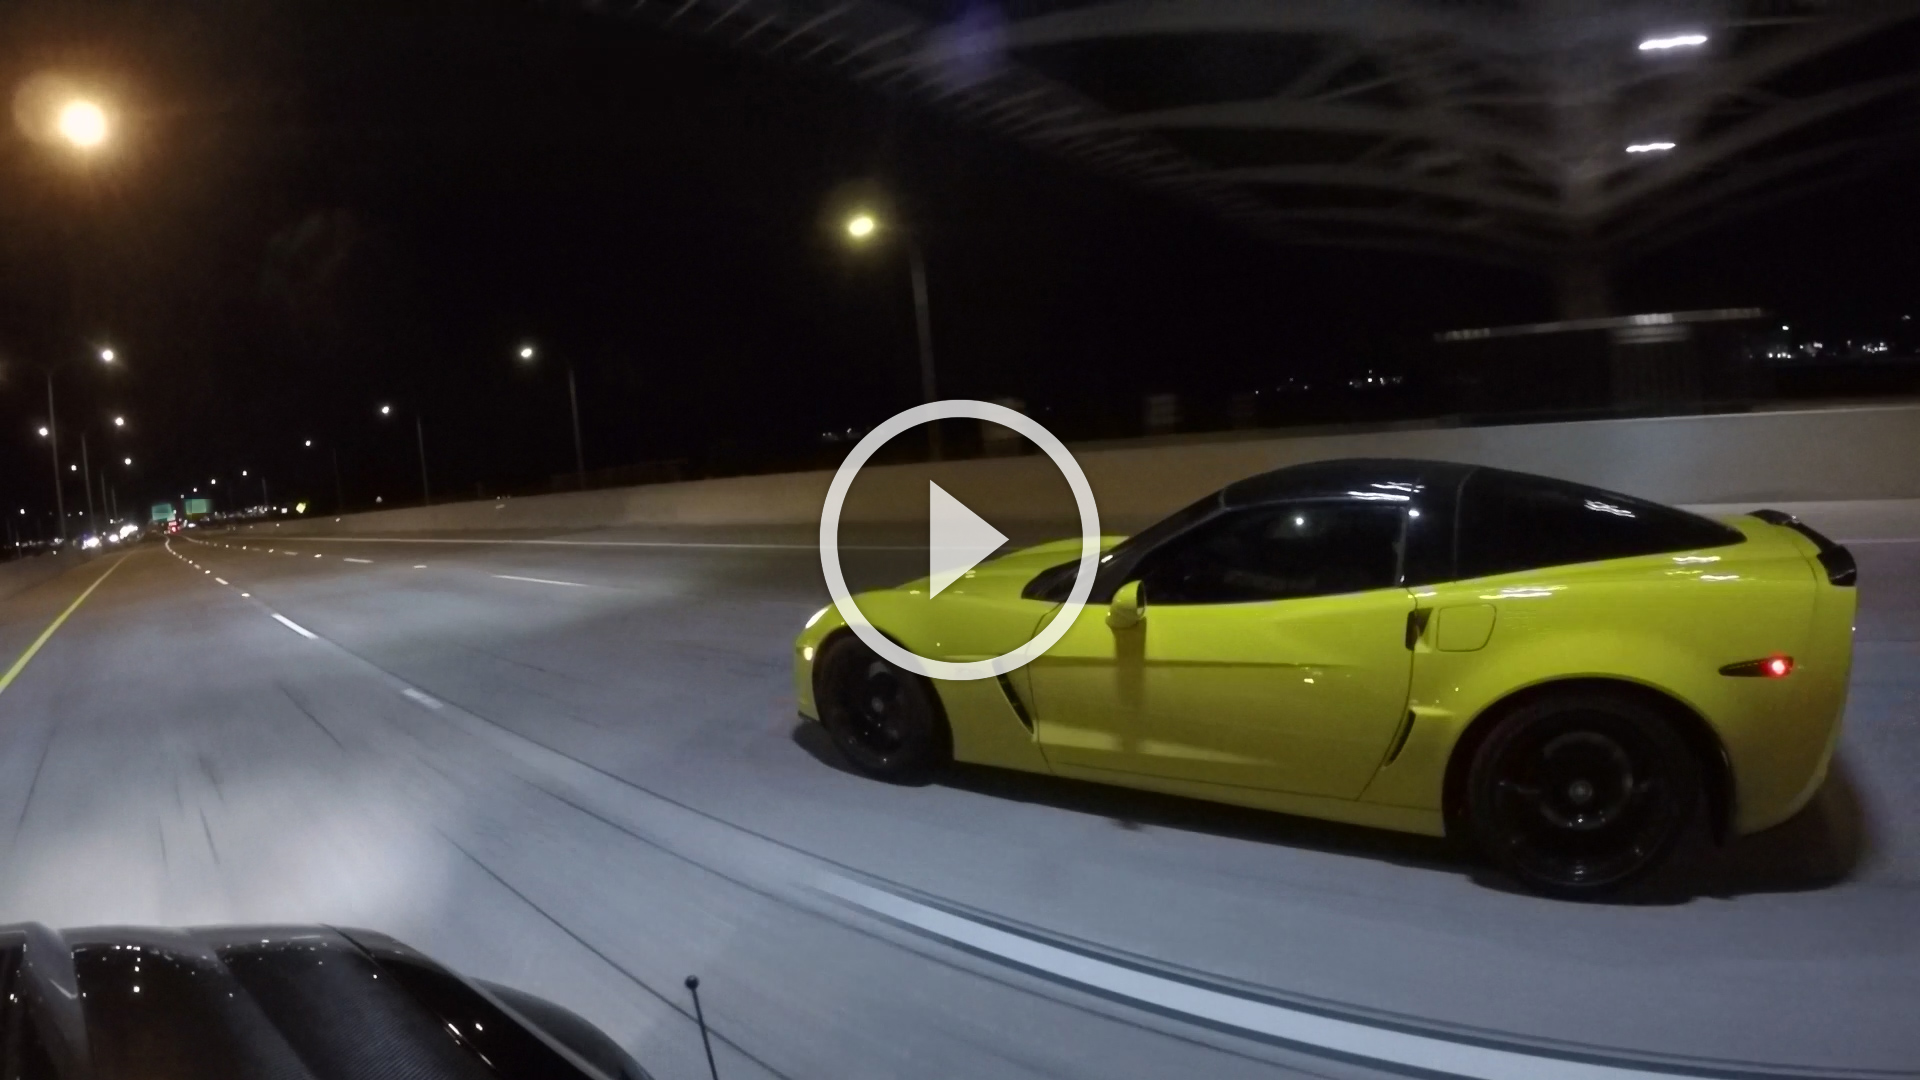 Mexico Racing League | The best street racing videos on the internet!